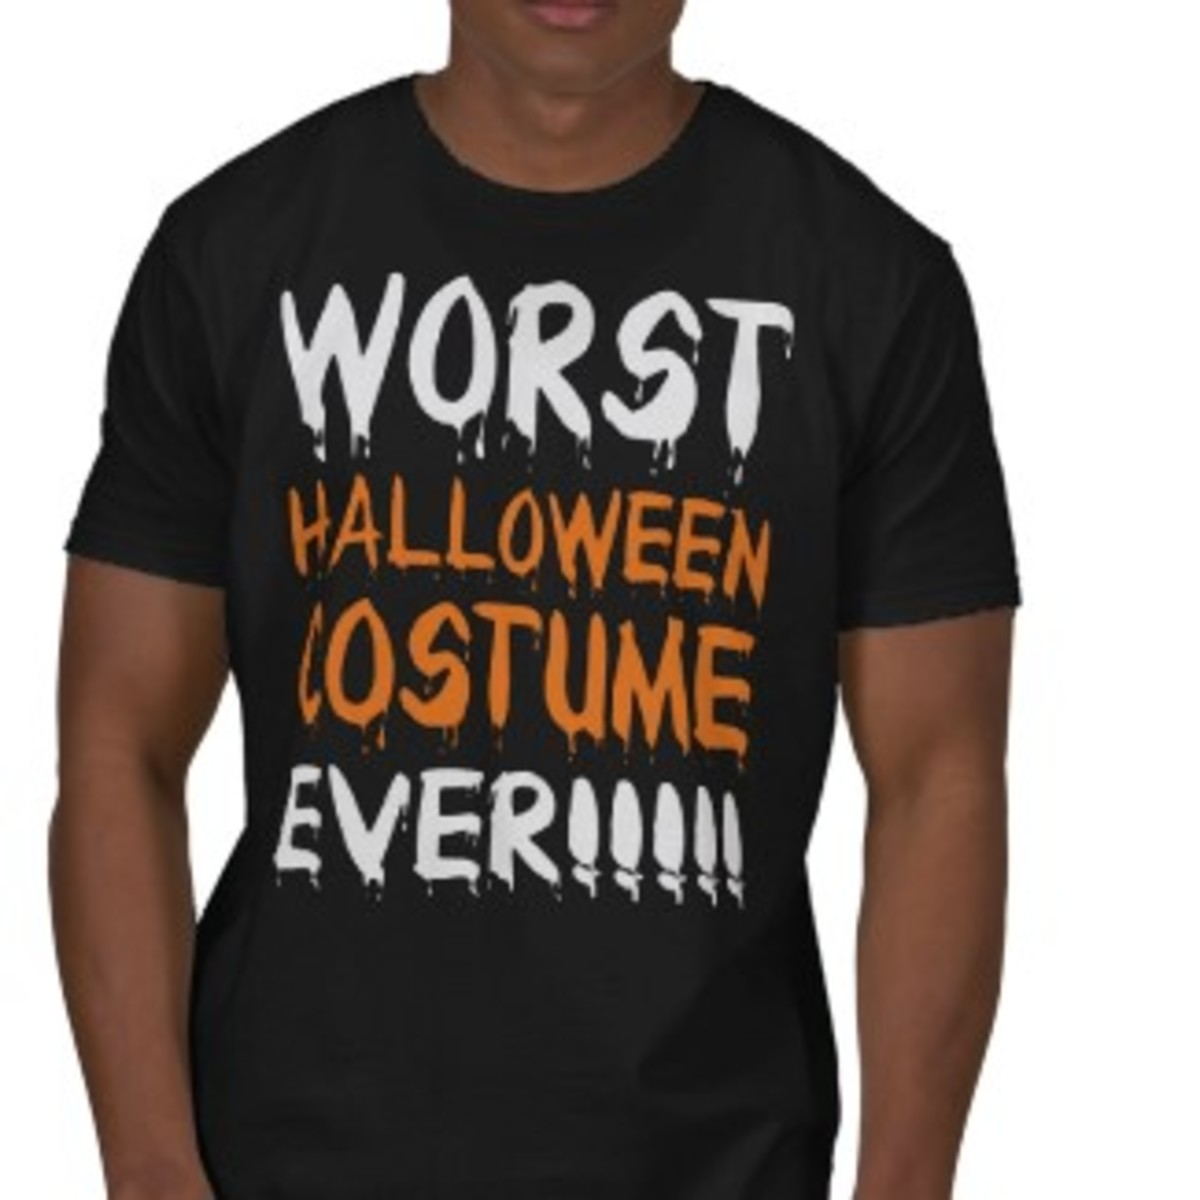 Funny Worst Halloween Costume Ever t shirt created by holidaysboutique on Zazzle.